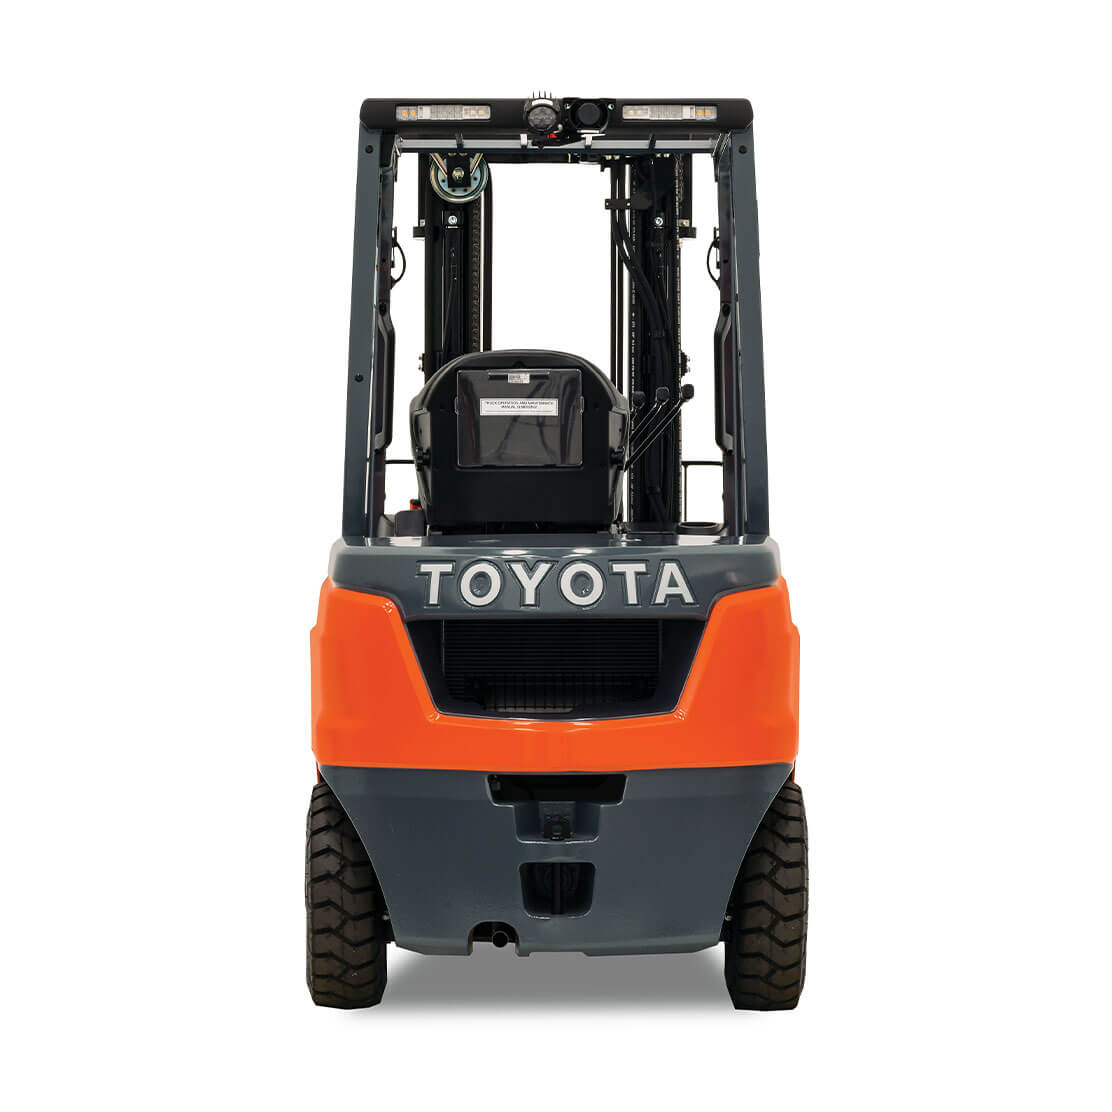 Core IC Pneumatic Forklift rear view